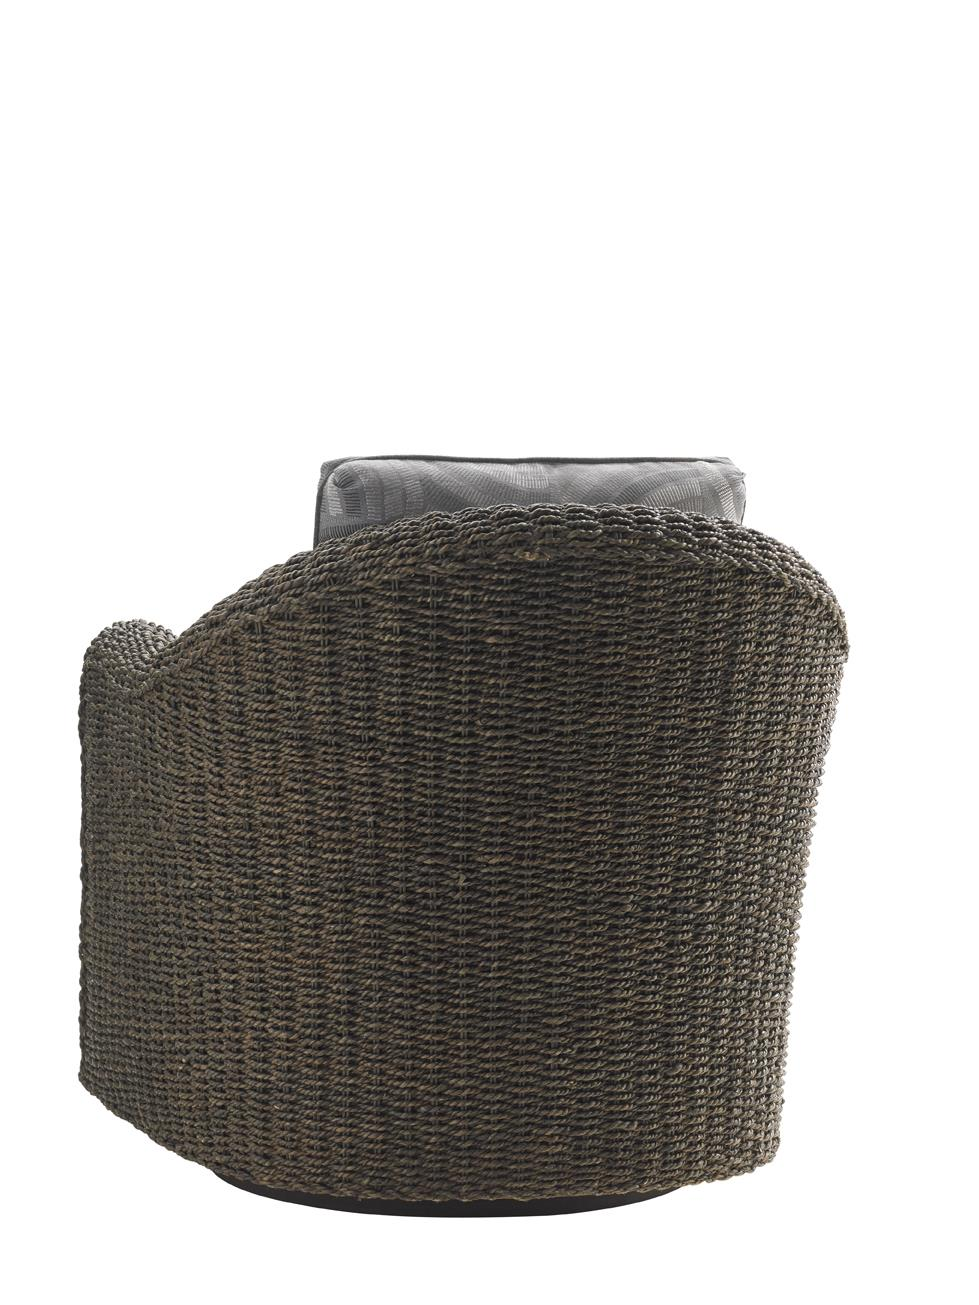 Lexington Oyster Bay Seabury Swivel Chair With Woven Water